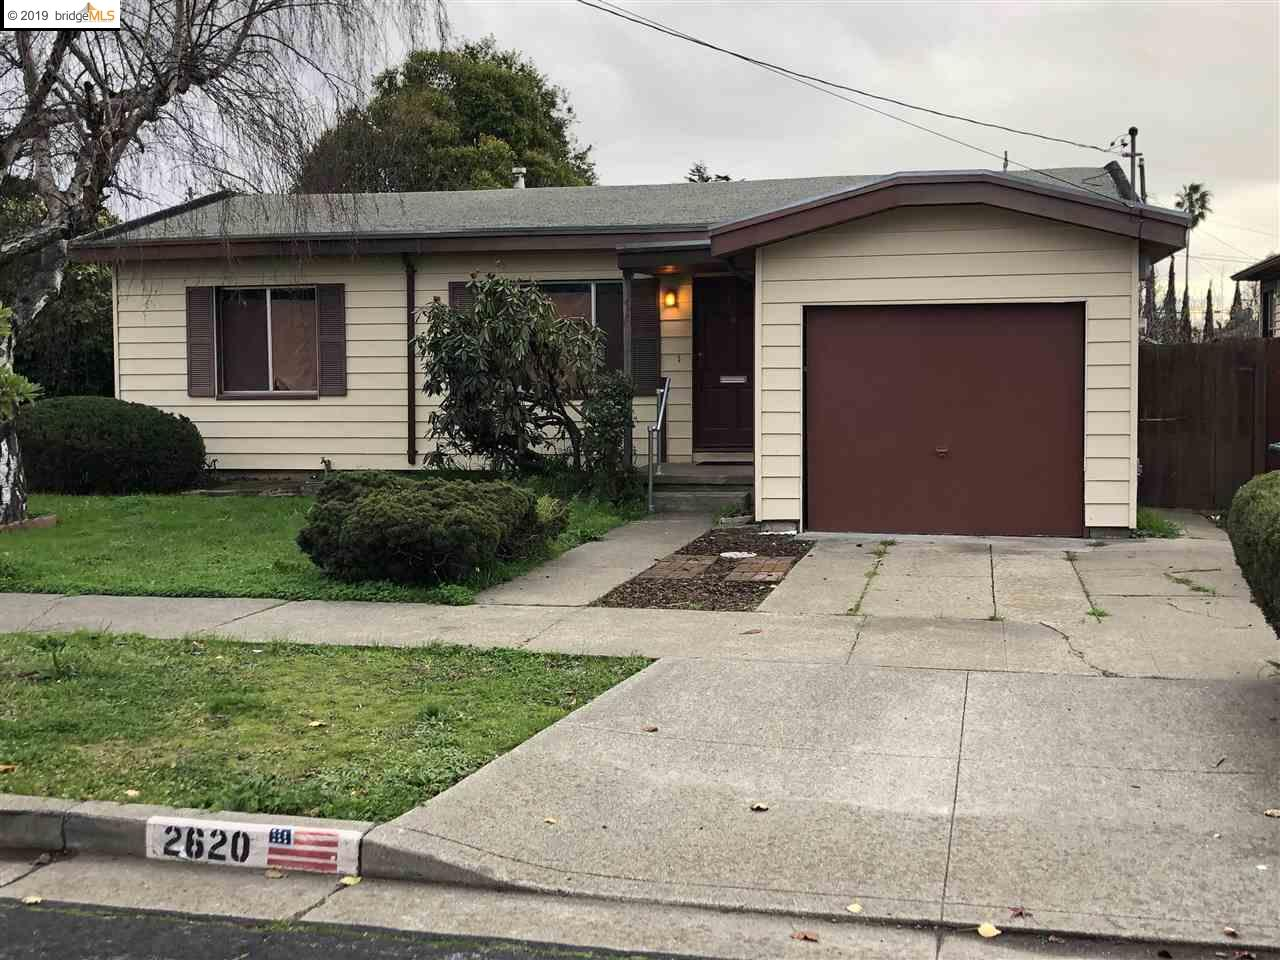 2620 LINCOLN AVE, RICHMOND, CA 94804